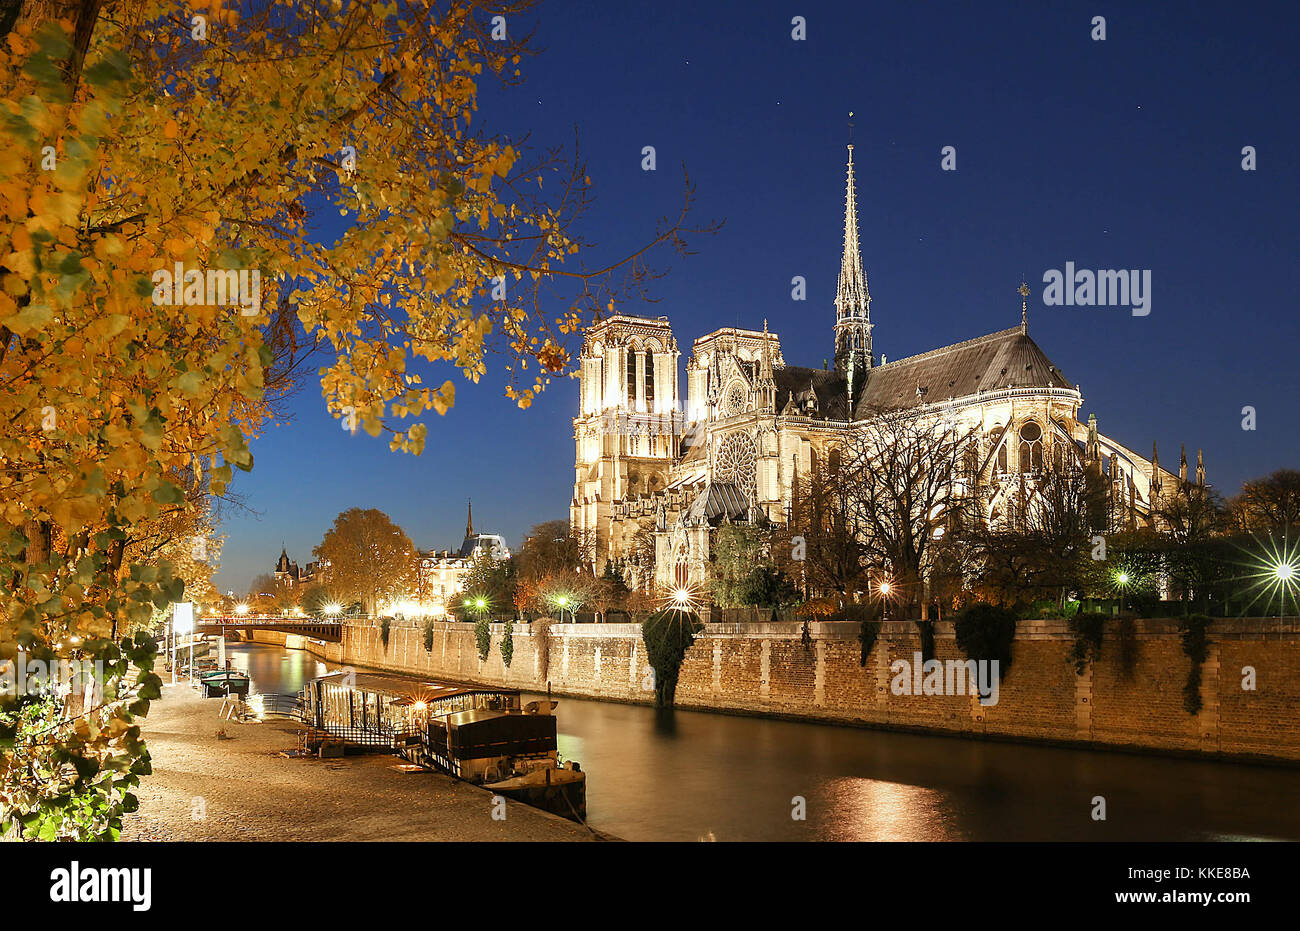 The Notre Dame is historic Catholic cathedral, one of the most visited monuments in Paris. - Stock Image